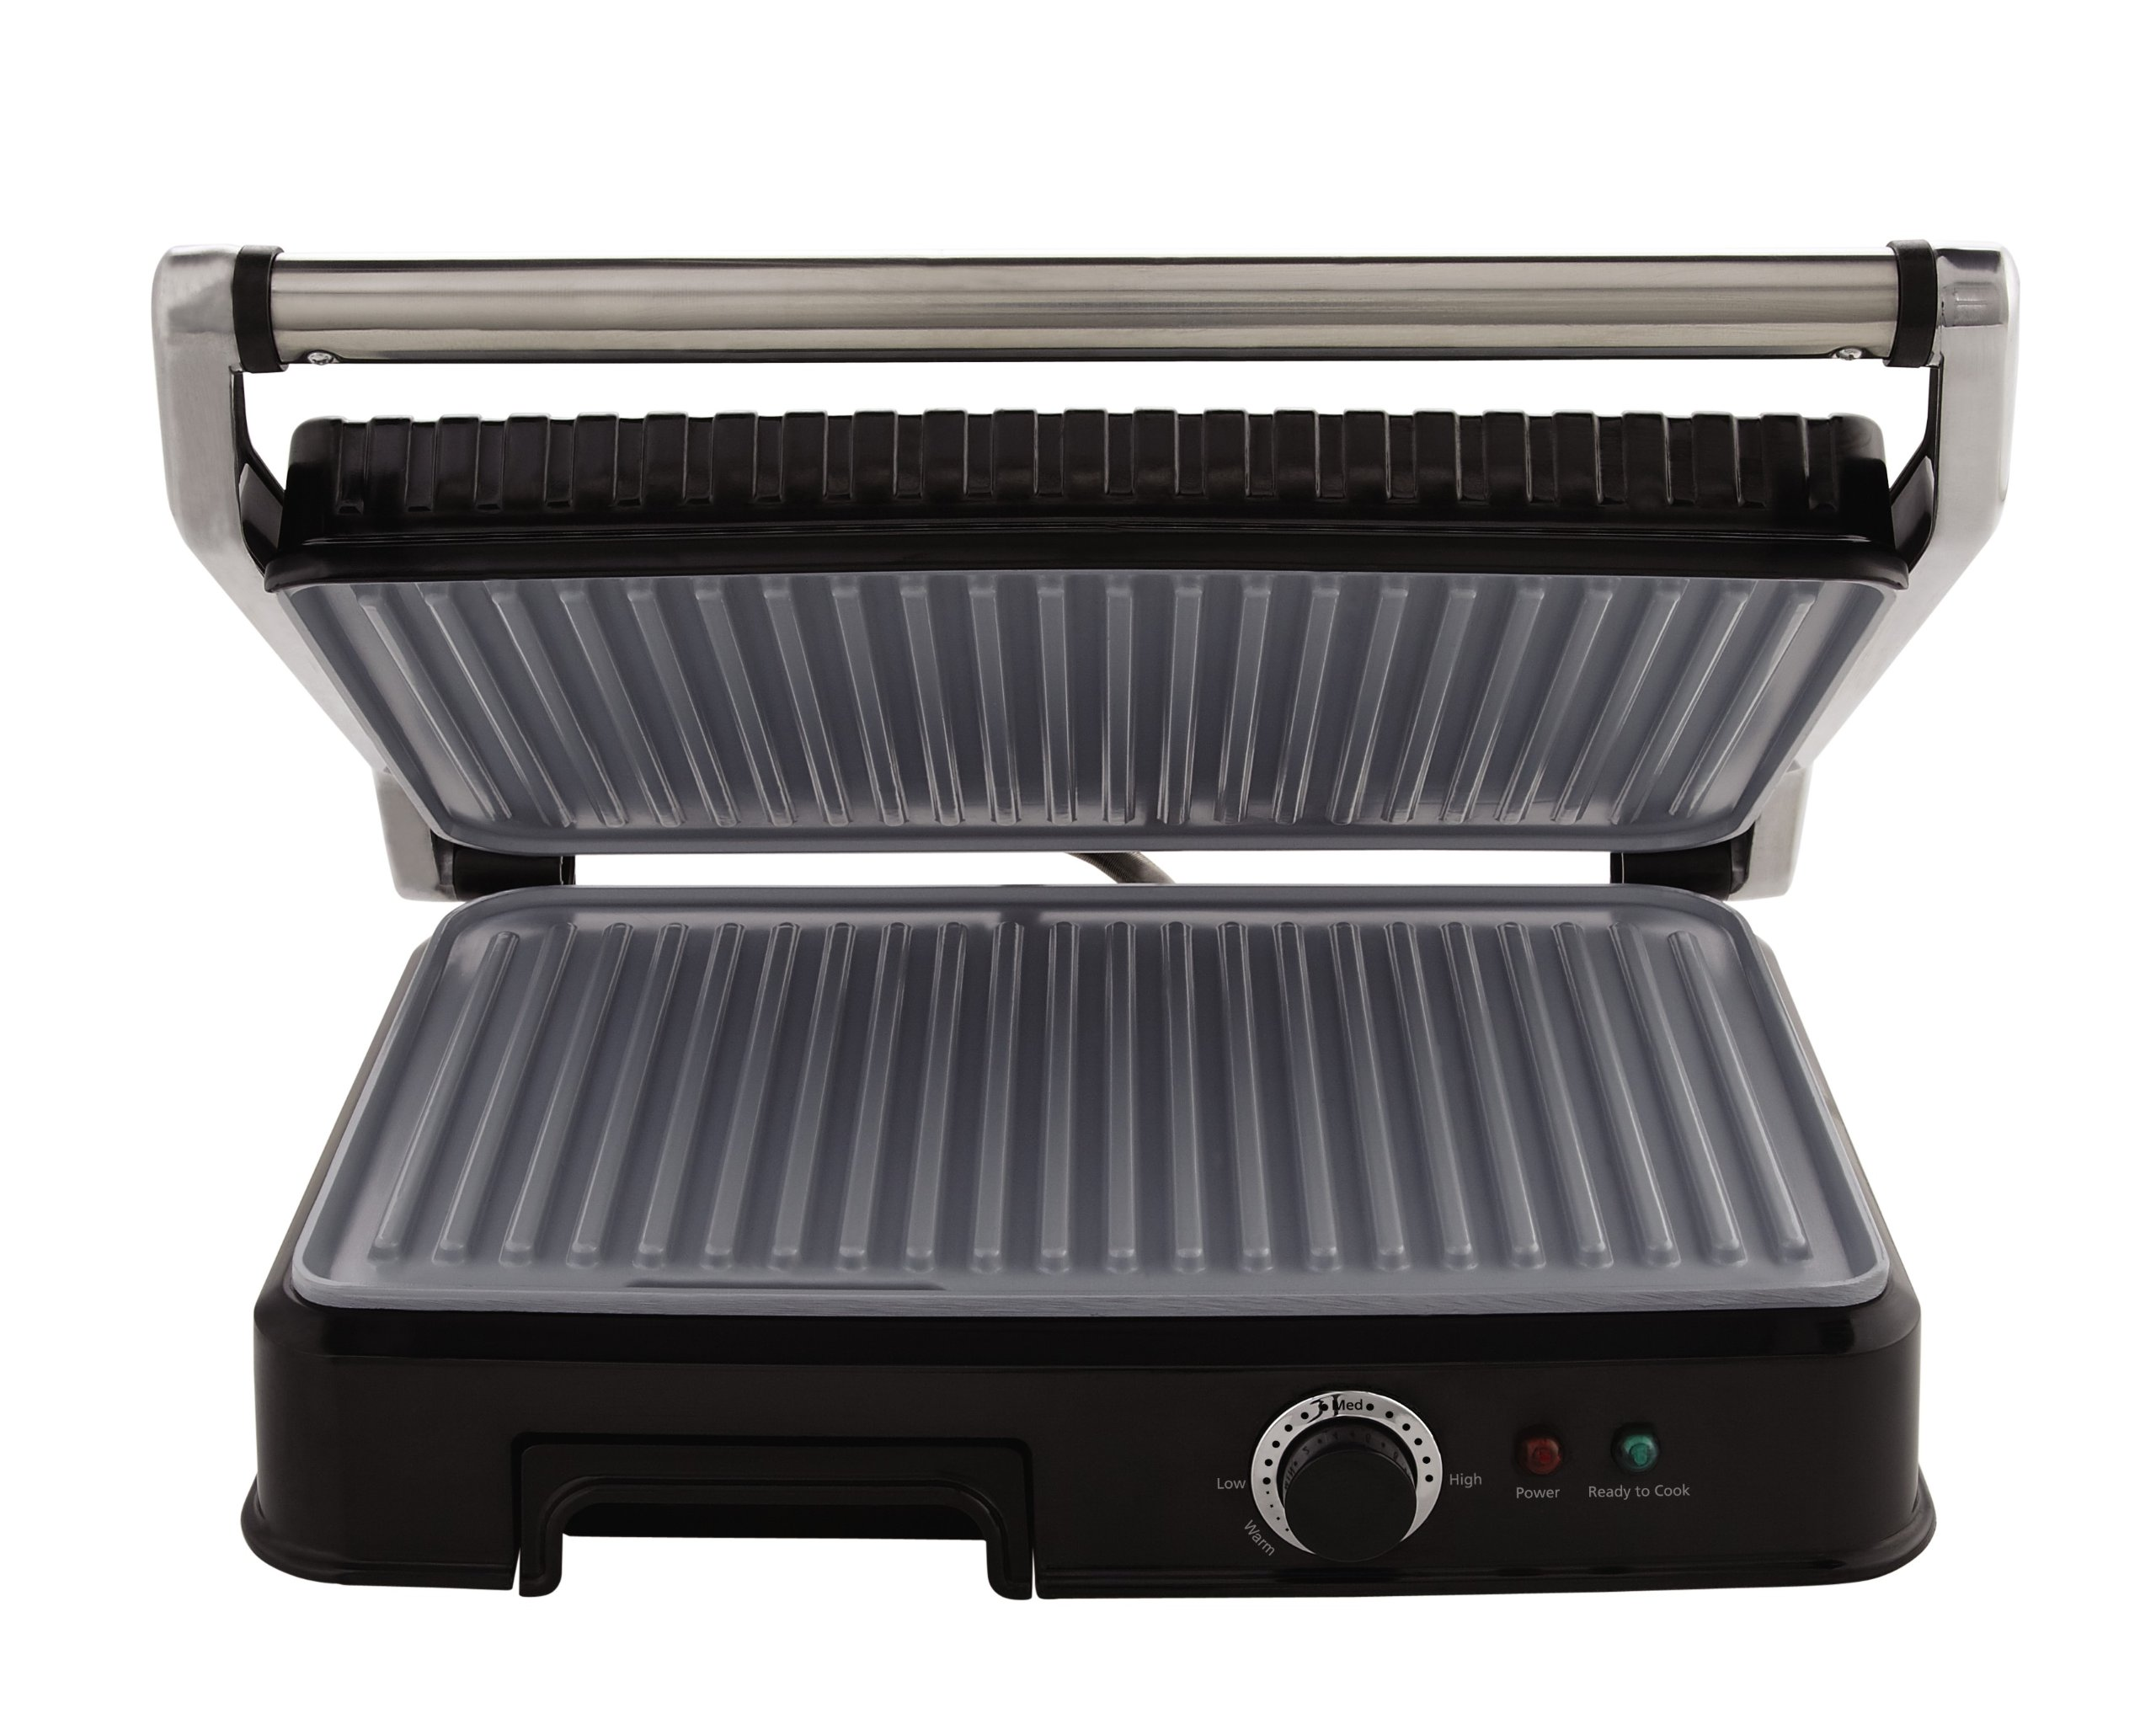 Oster Extra Large Titanium-Infused DuraCeramic Panini Maker and Indoor Grill, Black (CKSTPM6001-TECO) by Oster